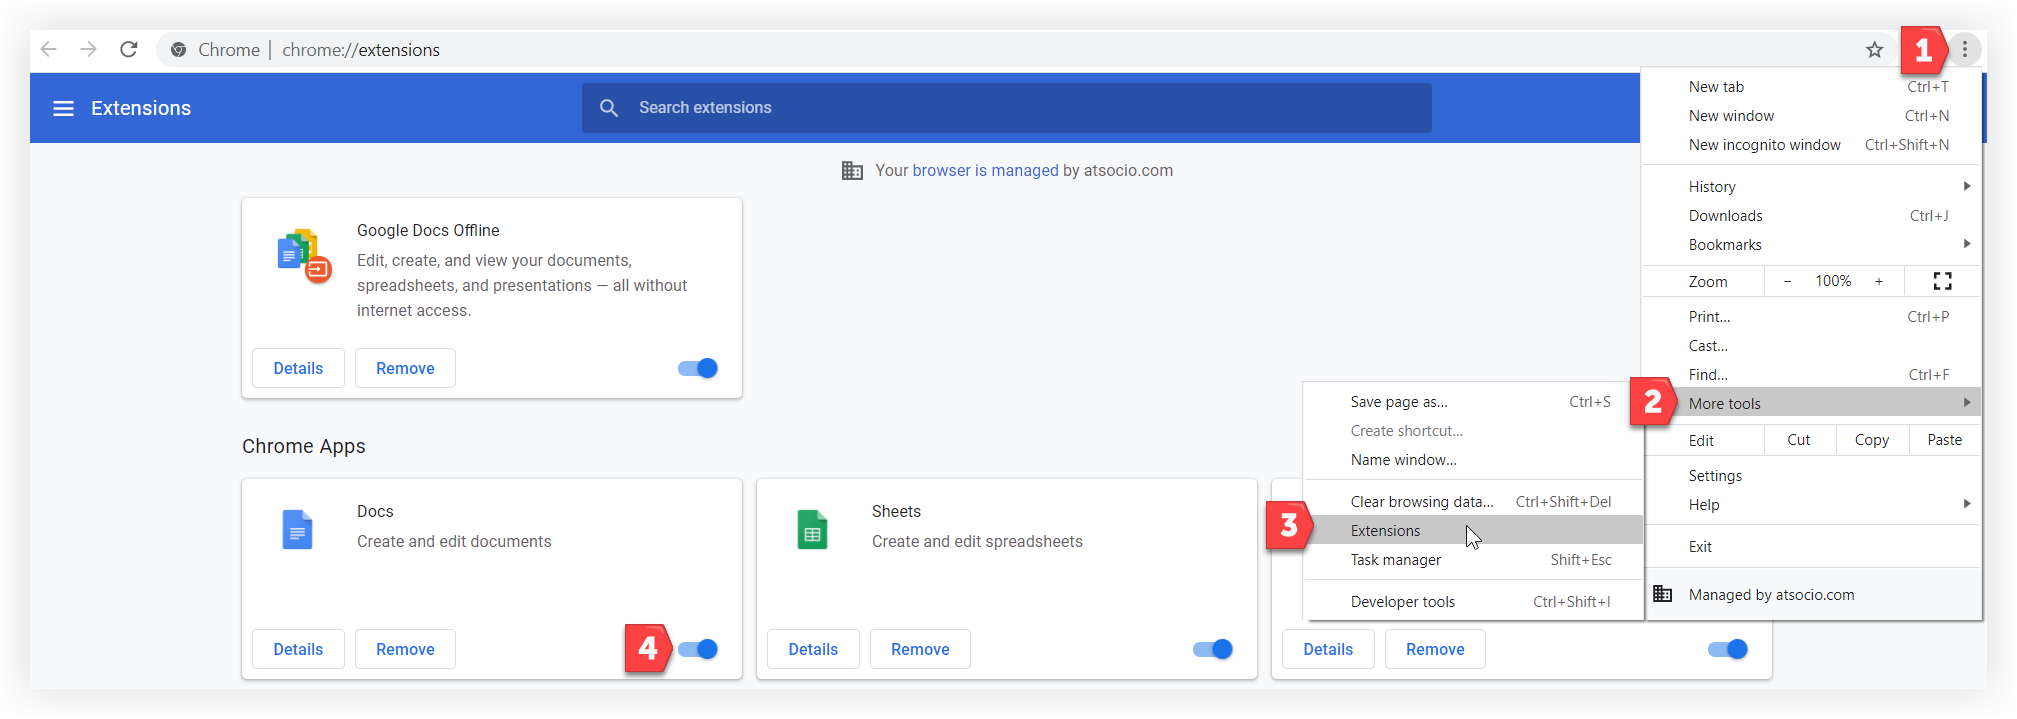 Screenshot showing the process just described.